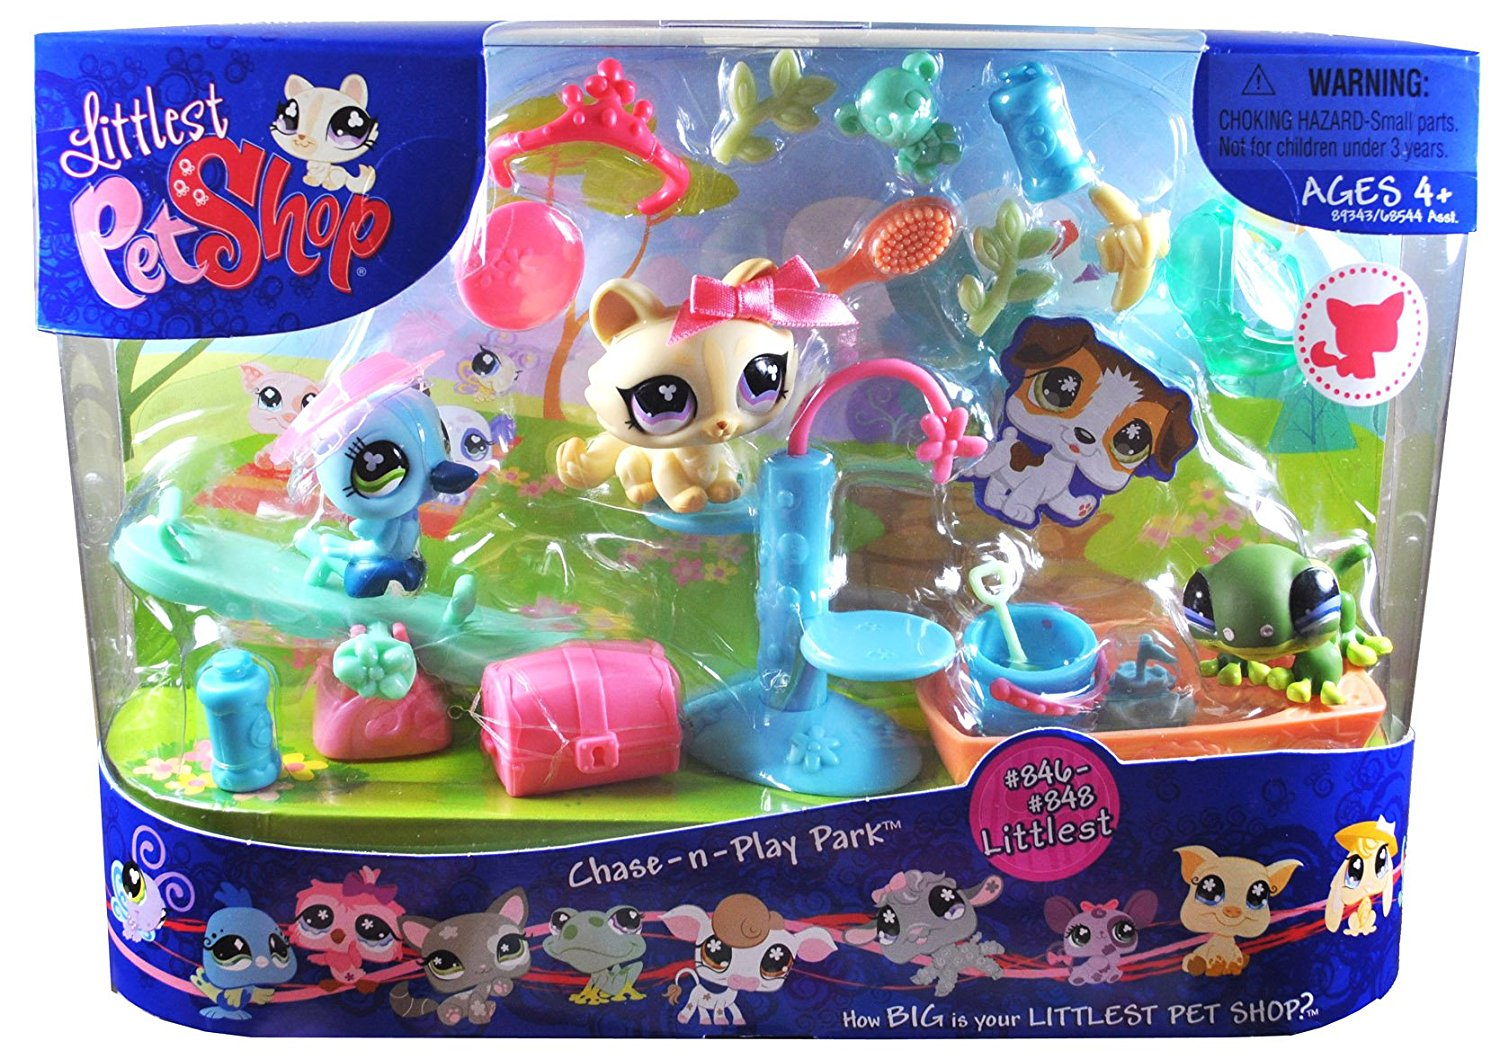 "Littlest Pet Shop Littlest Series 3 Pack Bobble Head Pet Figure Box Set : Chase-n-Play Park with Blue Hummingbird (#846), Green Gecko (#847), Yellow Kitten (#848), Seesaw, Cat Tree, Chest, Sandbox with Bucket and Shovel, Sunglass, Tiara, 2 Water Bottles, Banana and ""Pet Toys"""